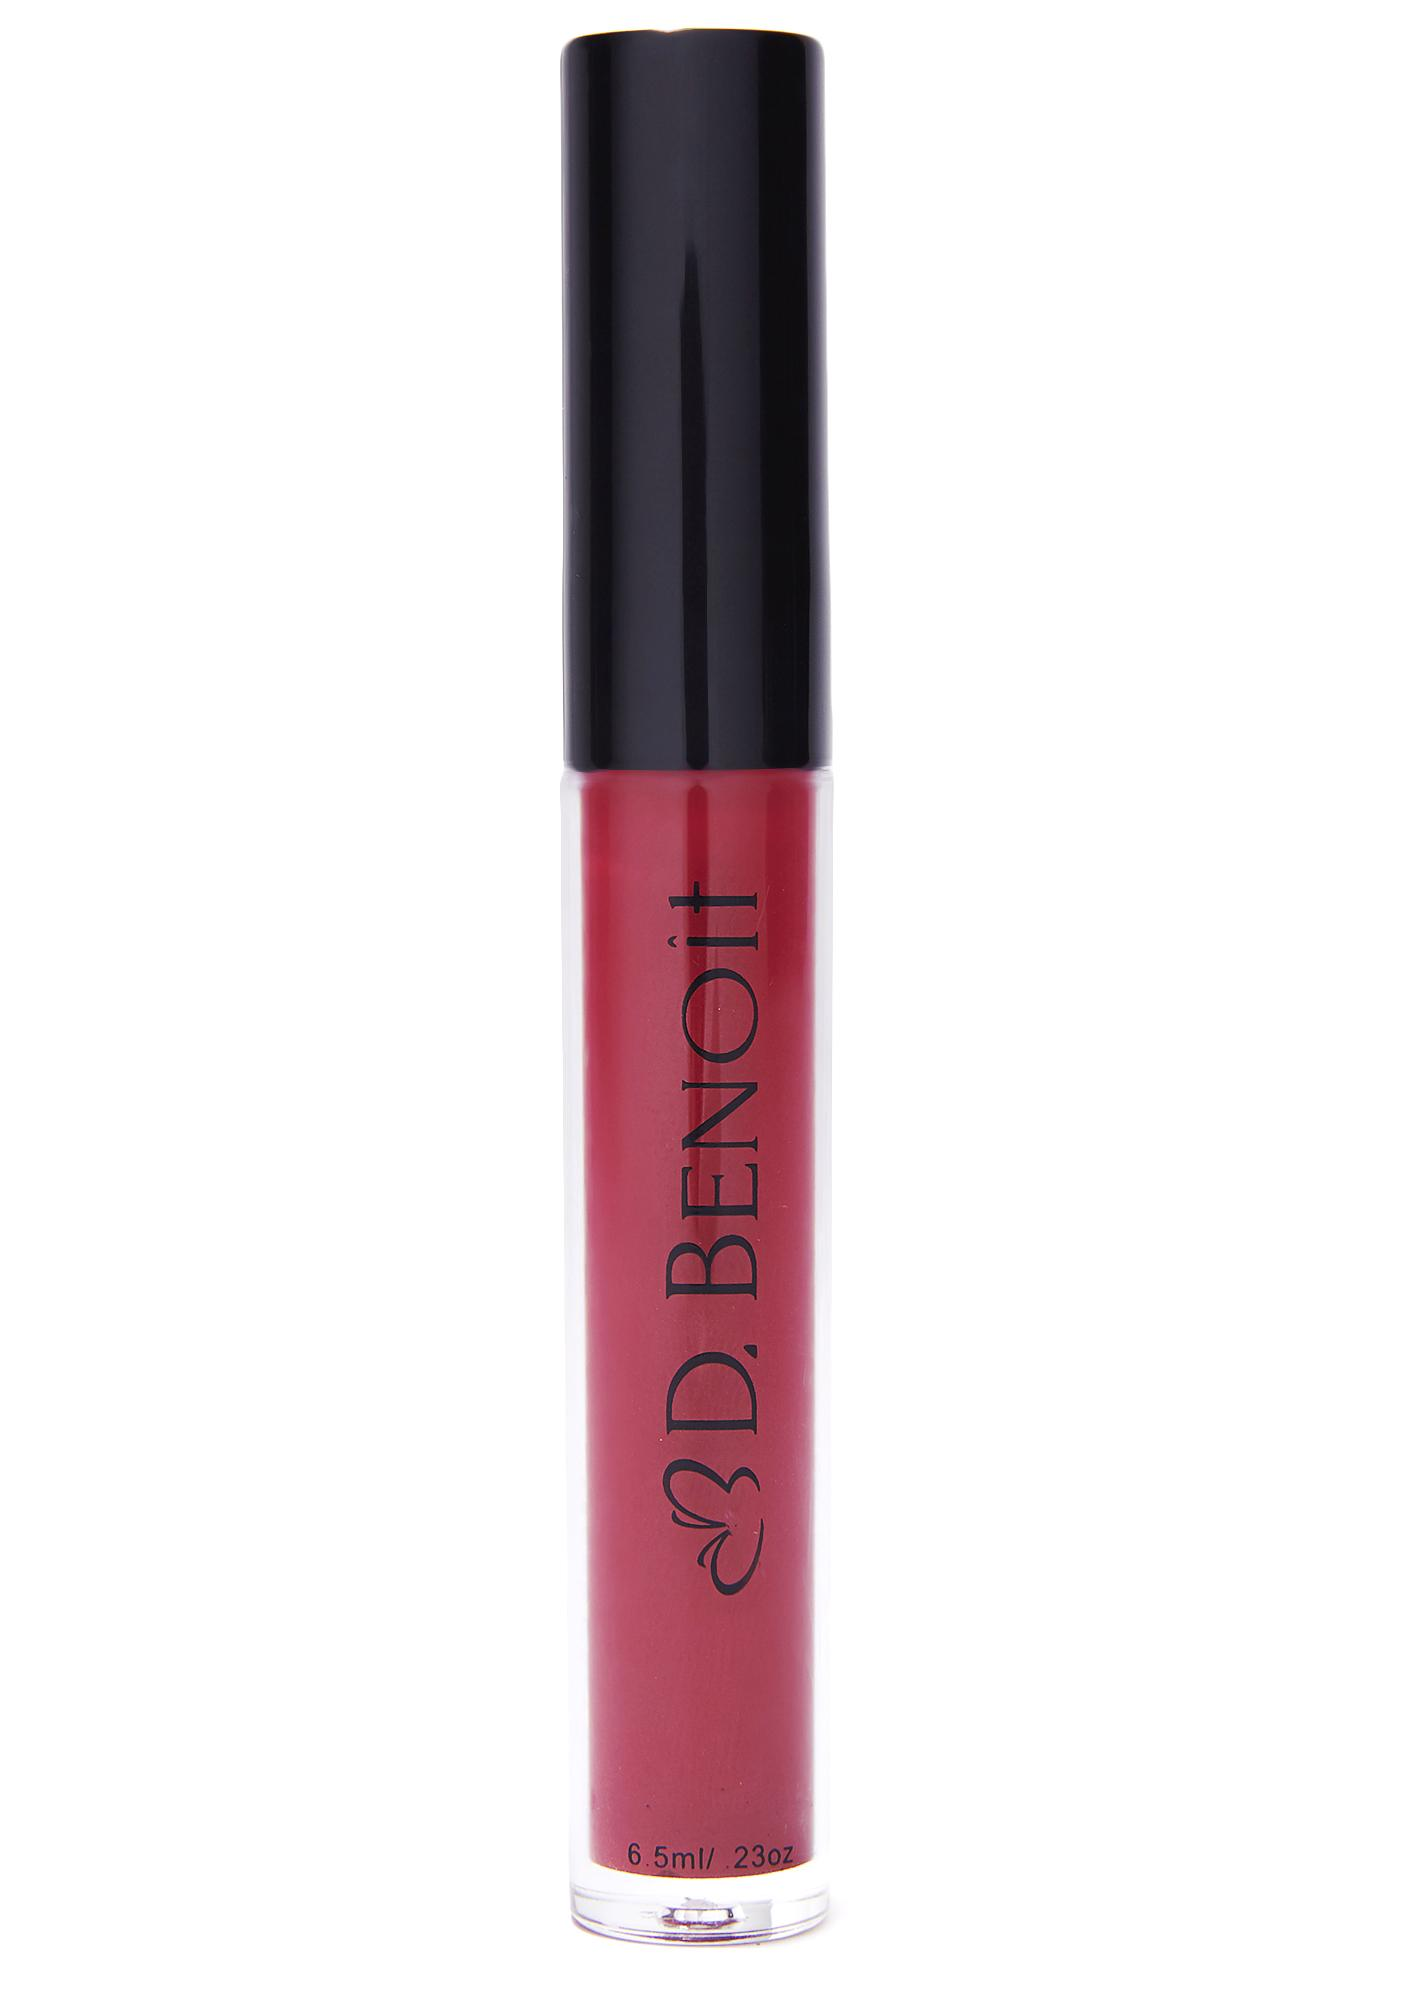 D. Benoit Sugarplum Lux Lip Cream